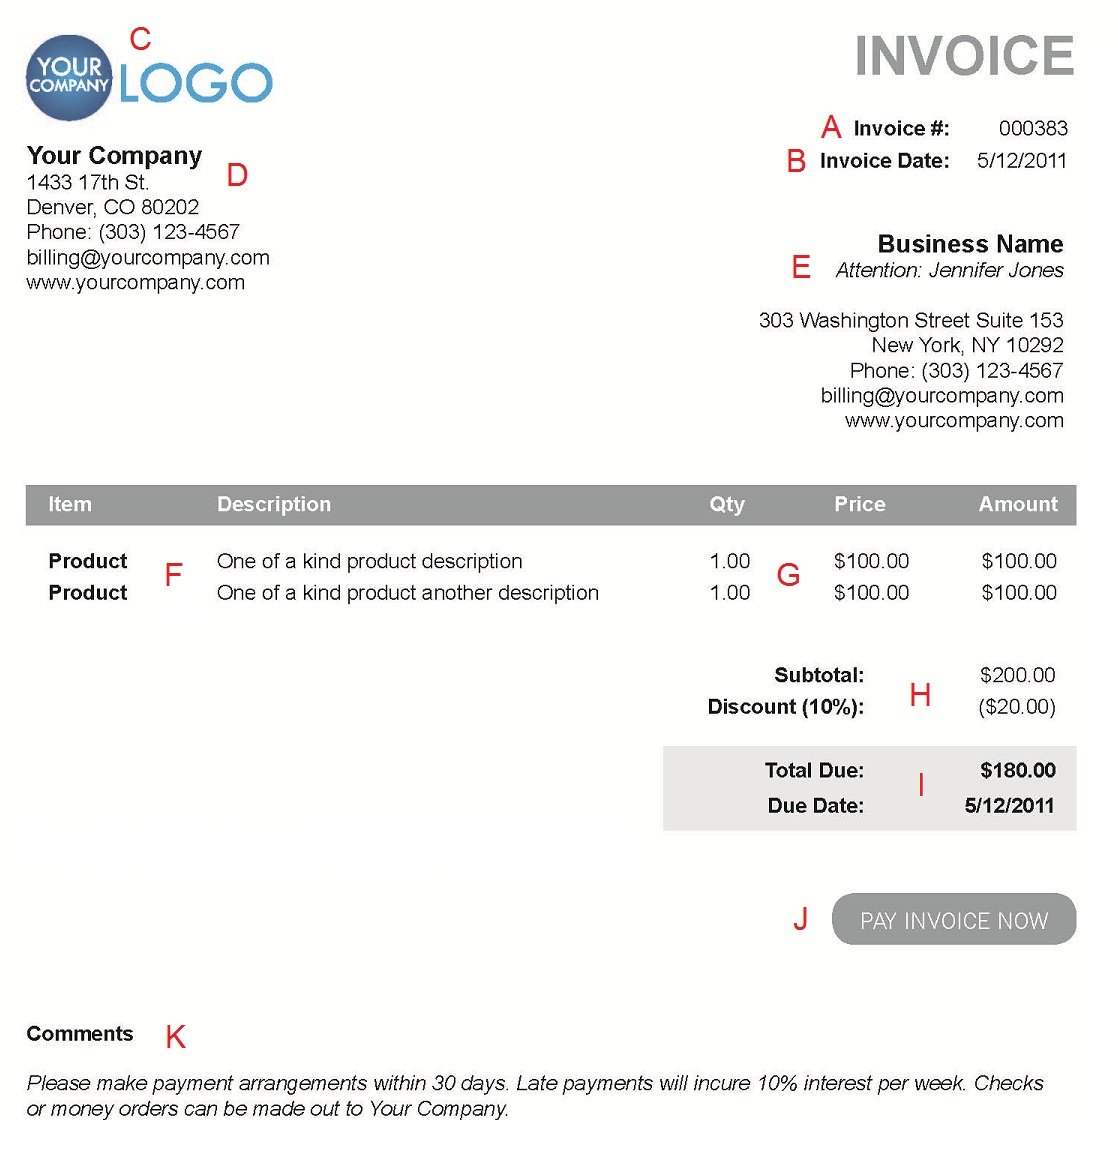 Picnictoimpeachus  Marvelous The  Different Sections Of An Electronic Payment Invoice With Glamorous A  With Cute Free Invoicing Software Also Past Due Invoice Email In Addition Google Doc Invoice Template And Paypal Invoice Id As Well As How To Send An Invoice On Paypal Additionally Invoice Pdf From Paysimplecom With Picnictoimpeachus  Glamorous The  Different Sections Of An Electronic Payment Invoice With Cute A  And Marvelous Free Invoicing Software Also Past Due Invoice Email In Addition Google Doc Invoice Template From Paysimplecom